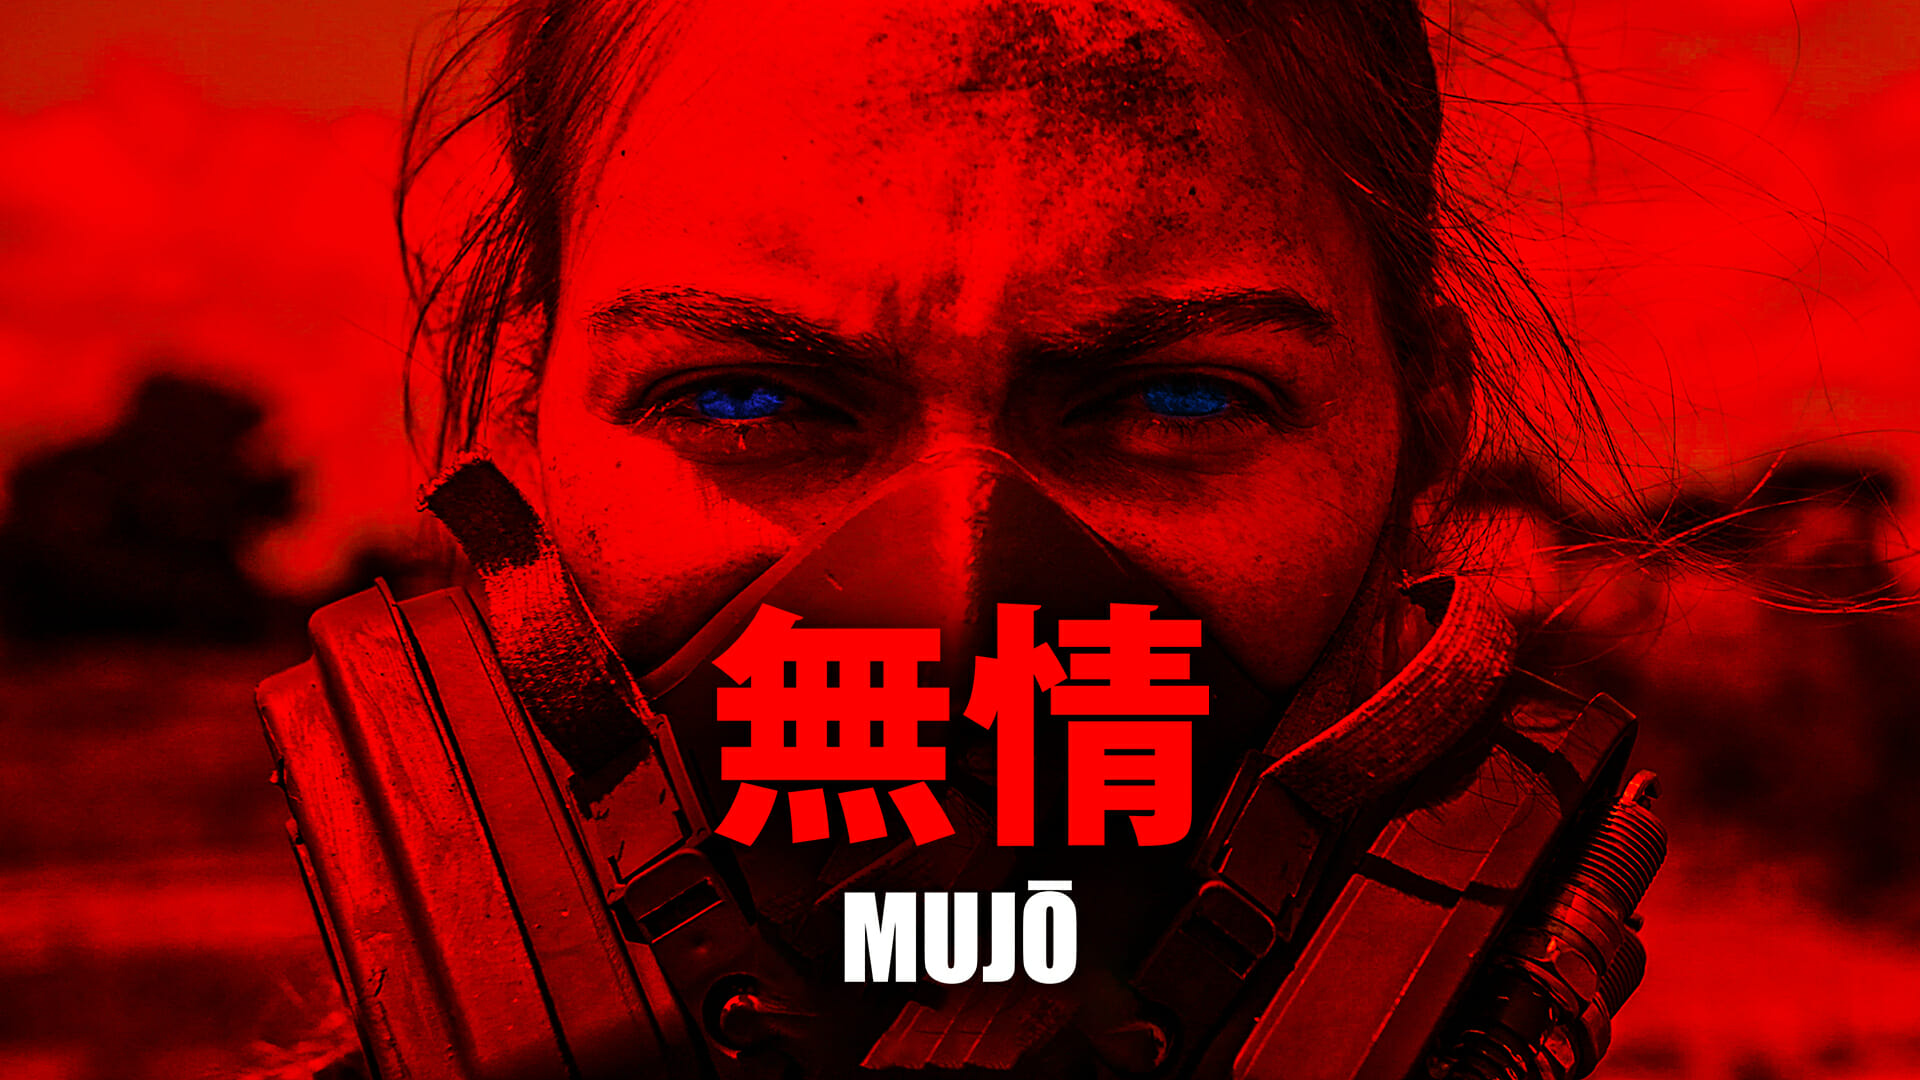 Sci-Fi Short film Mujo